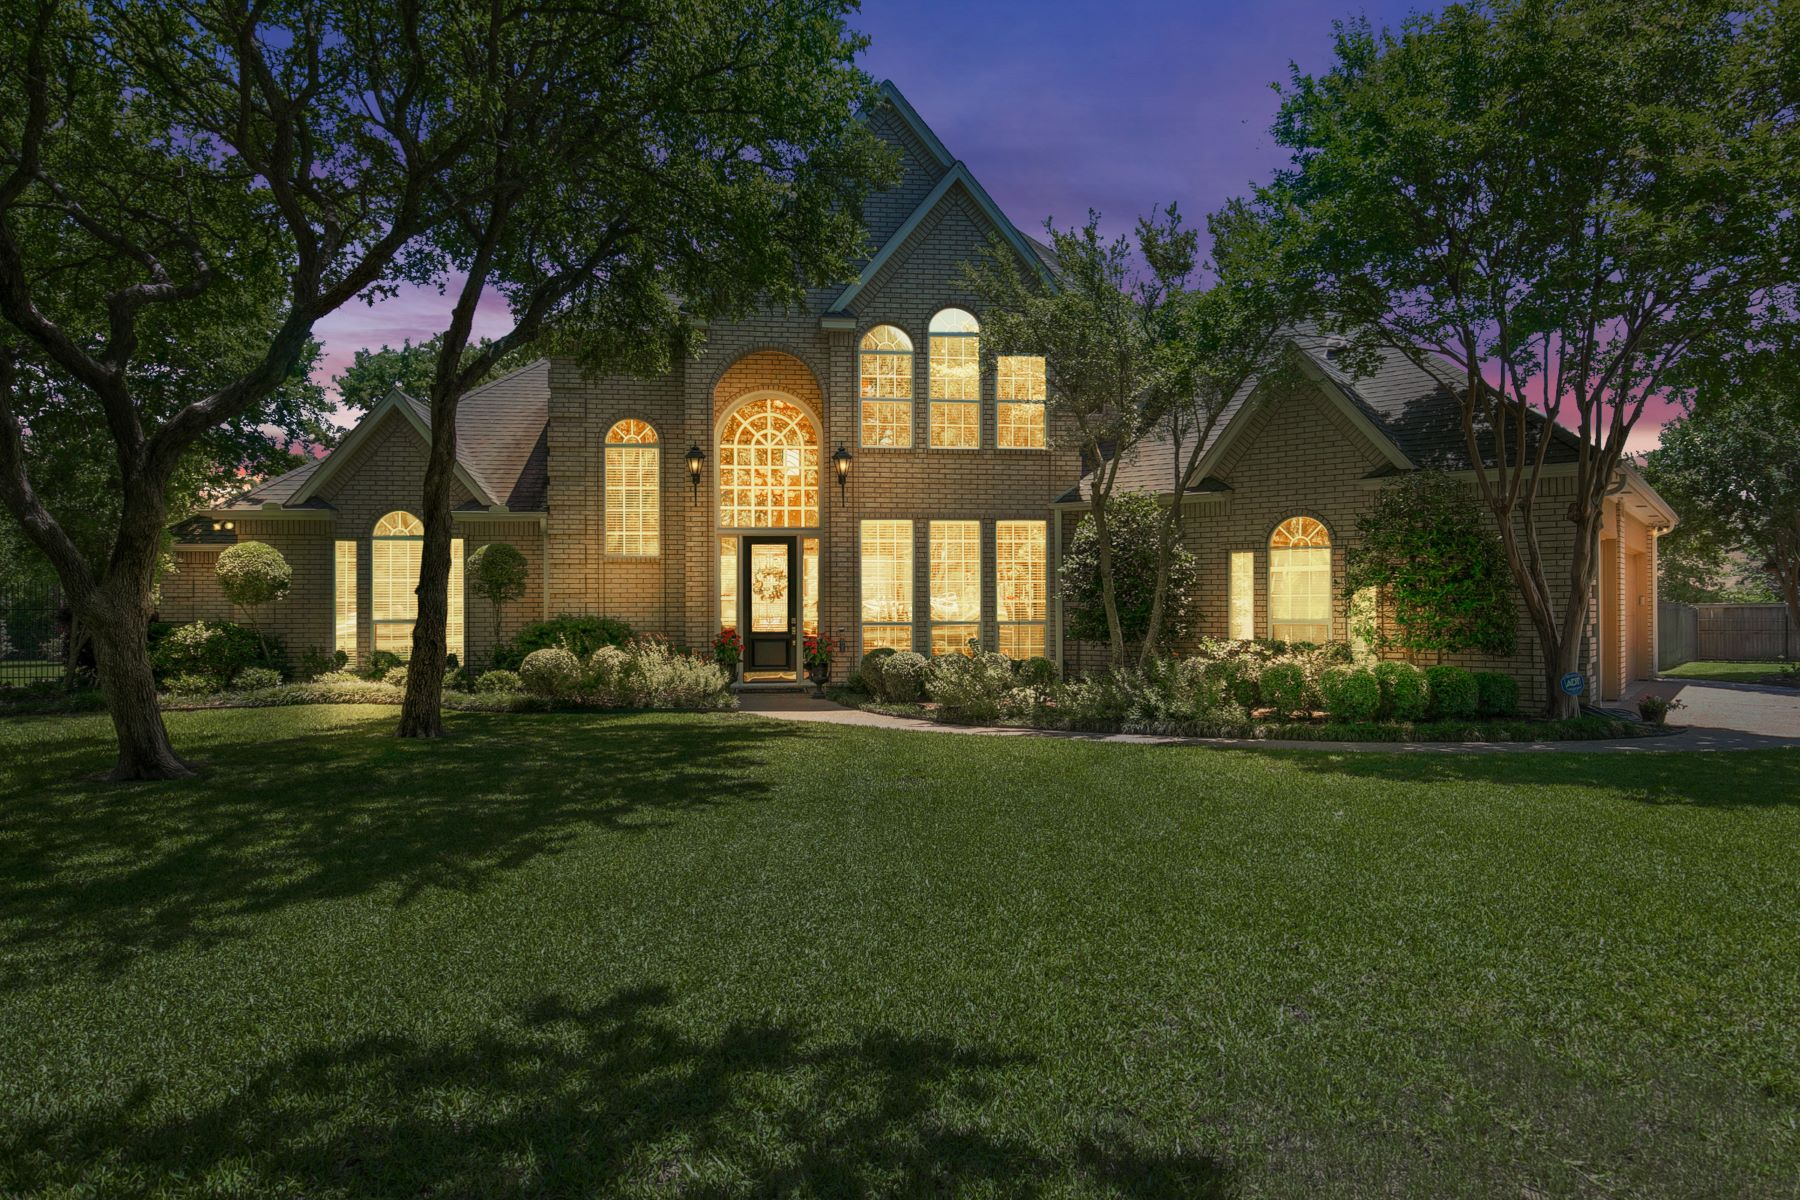 Single Family Homes for Sale at Magnificent Aledo Estate 1729 McDavid Court Aledo, Texas 76008 United States